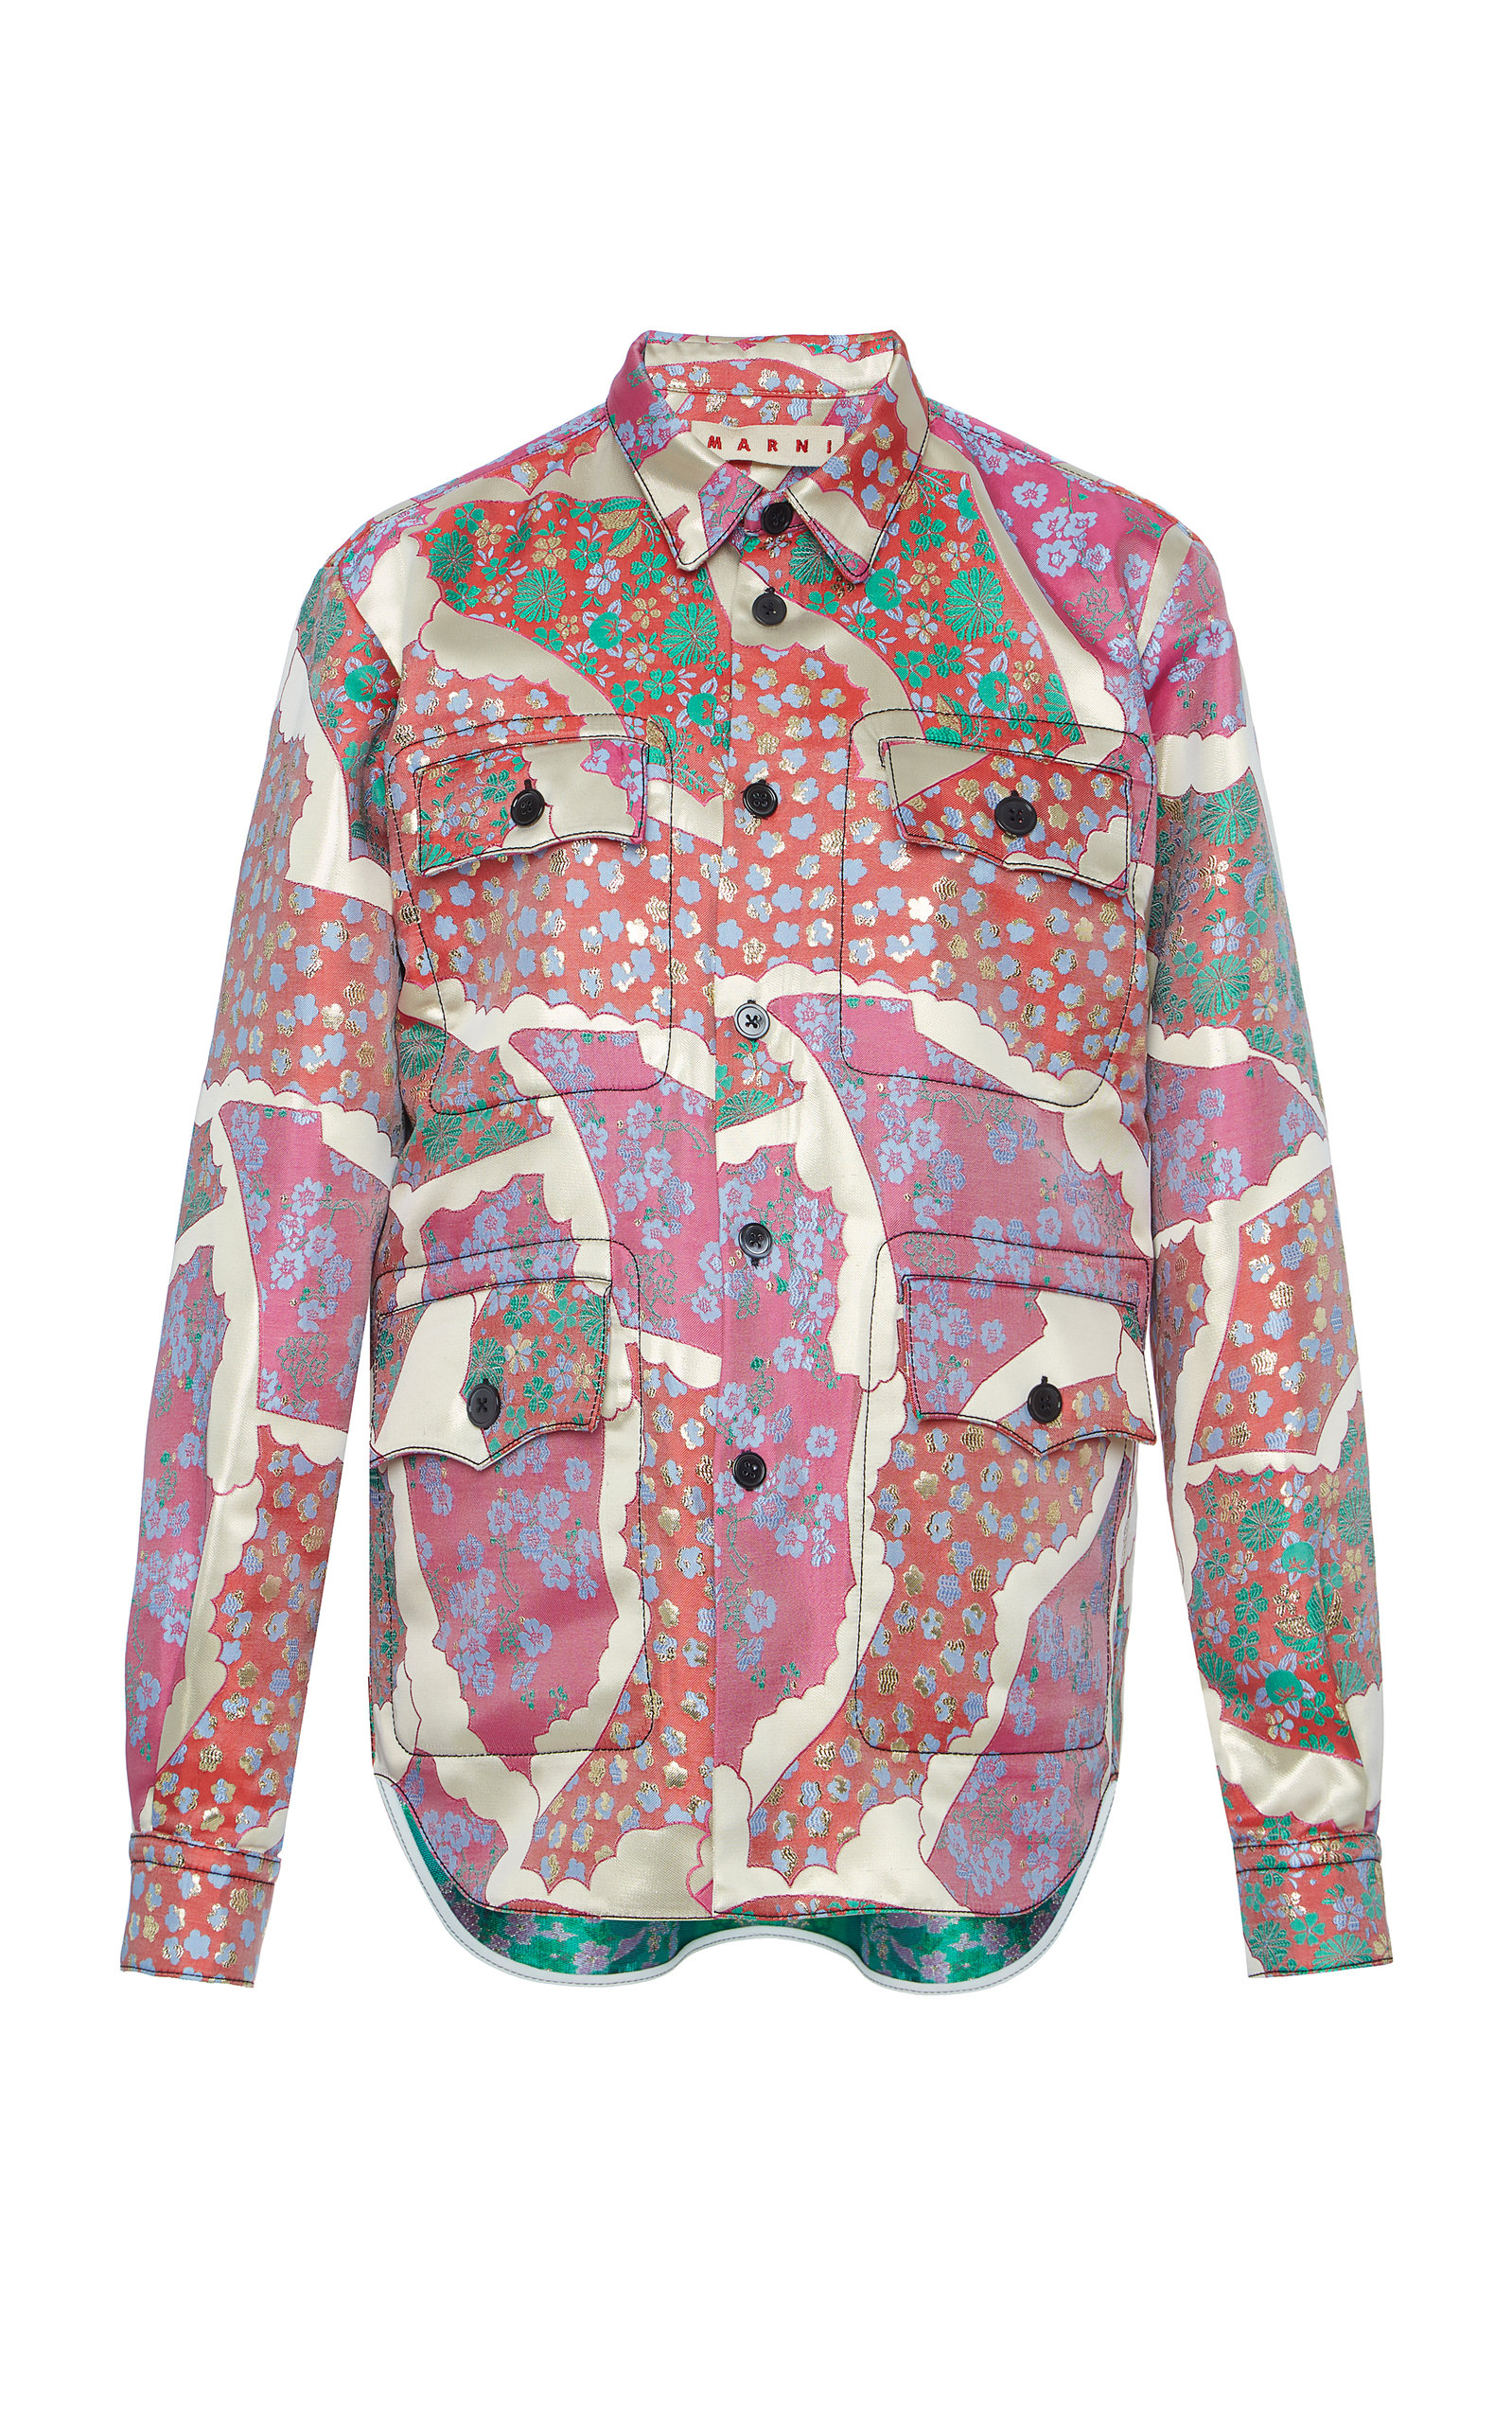 Satin Marni Modesens In Floral Polo Shirt Red Neck qwxPHPcWn5